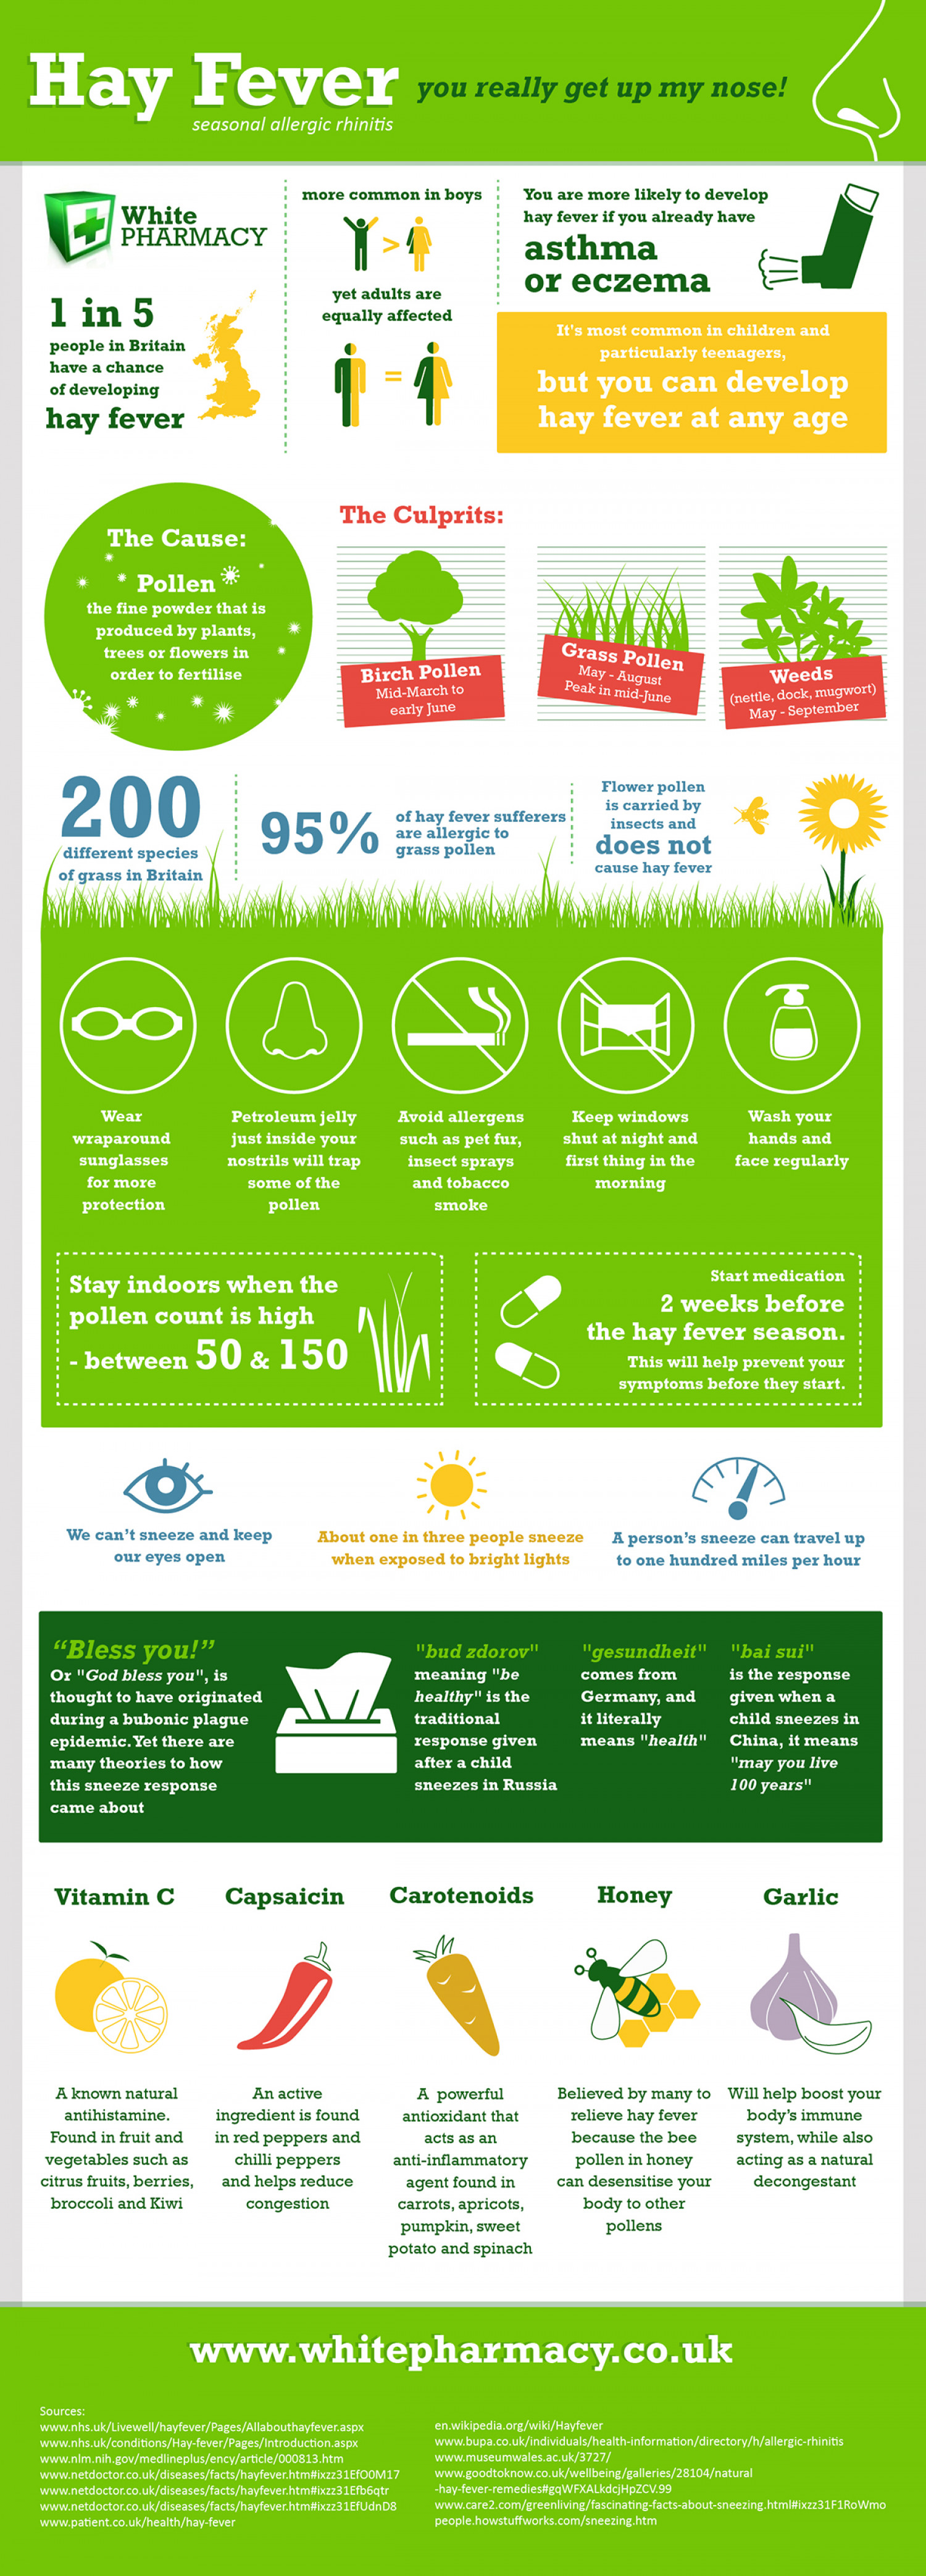 Hay Fever; You Really Get Up My Nose! Infographic